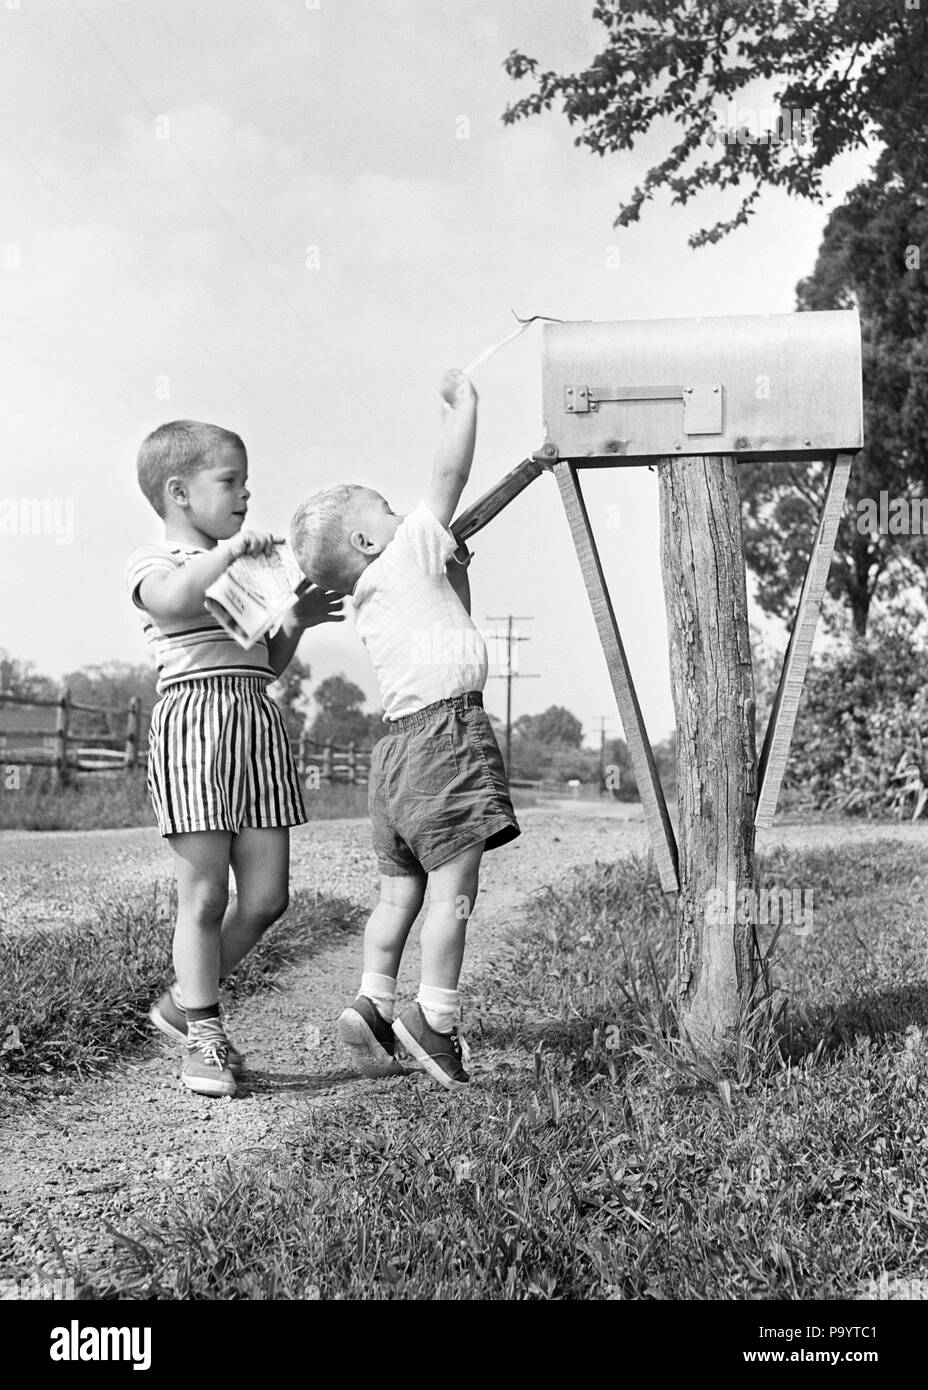 1950s TWO BOYS MAILING LETTERS RURAL COUNTRY ROAD - j2872 HBB001 HARS RFD SIBLING MAILING MAILBOX RURAL FREE DELIVERY COOPERATION GROWTH JUVENILES TOGETHERNESS BLACK AND WHITE CAUCASIAN ETHNICITY OLD FASHIONED - Stock Image